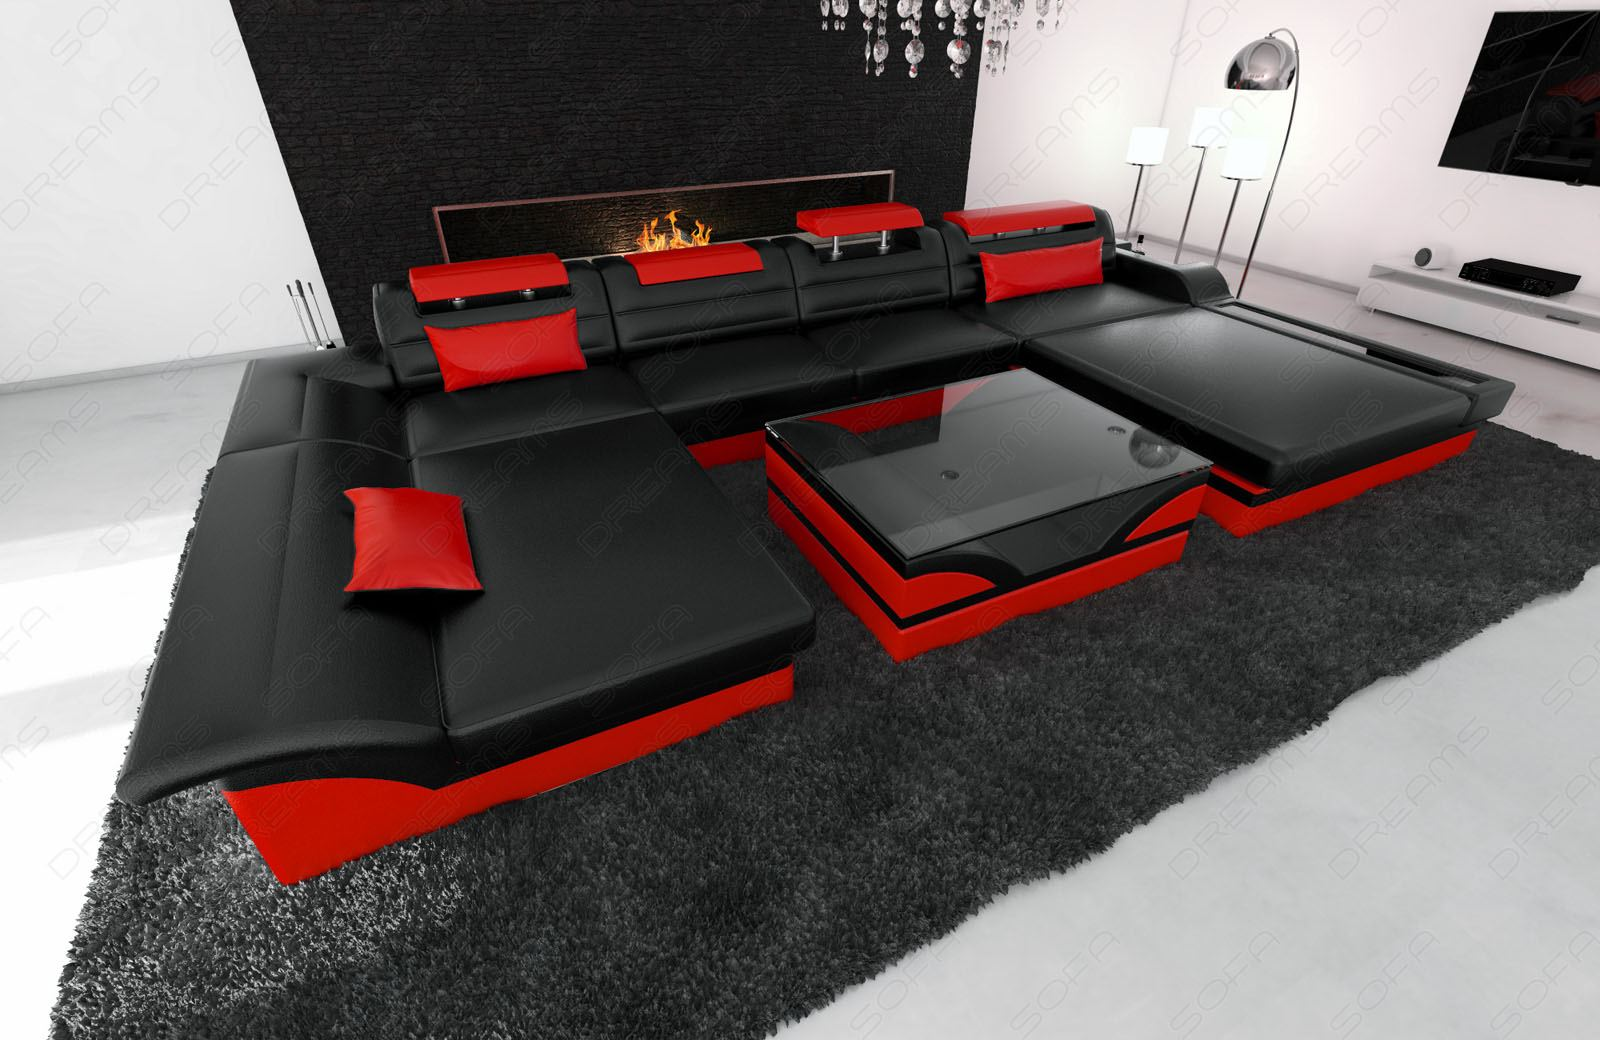 wohnlandschaft monza xxl designersofa mit led beleuchtung rgb ebay. Black Bedroom Furniture Sets. Home Design Ideas